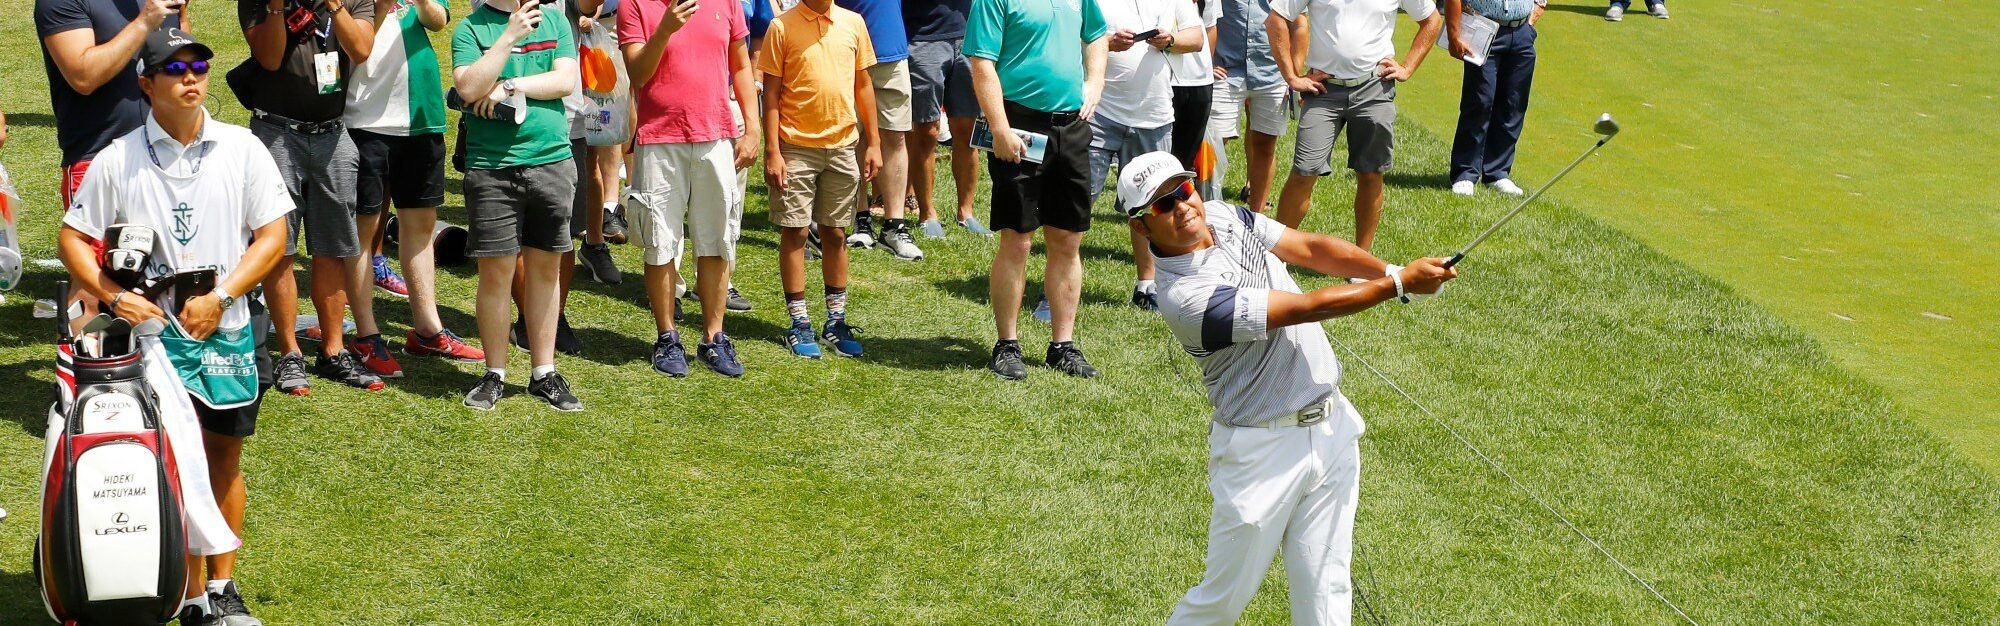 Rules of Golf explained: My ball hit another person – what happens now?